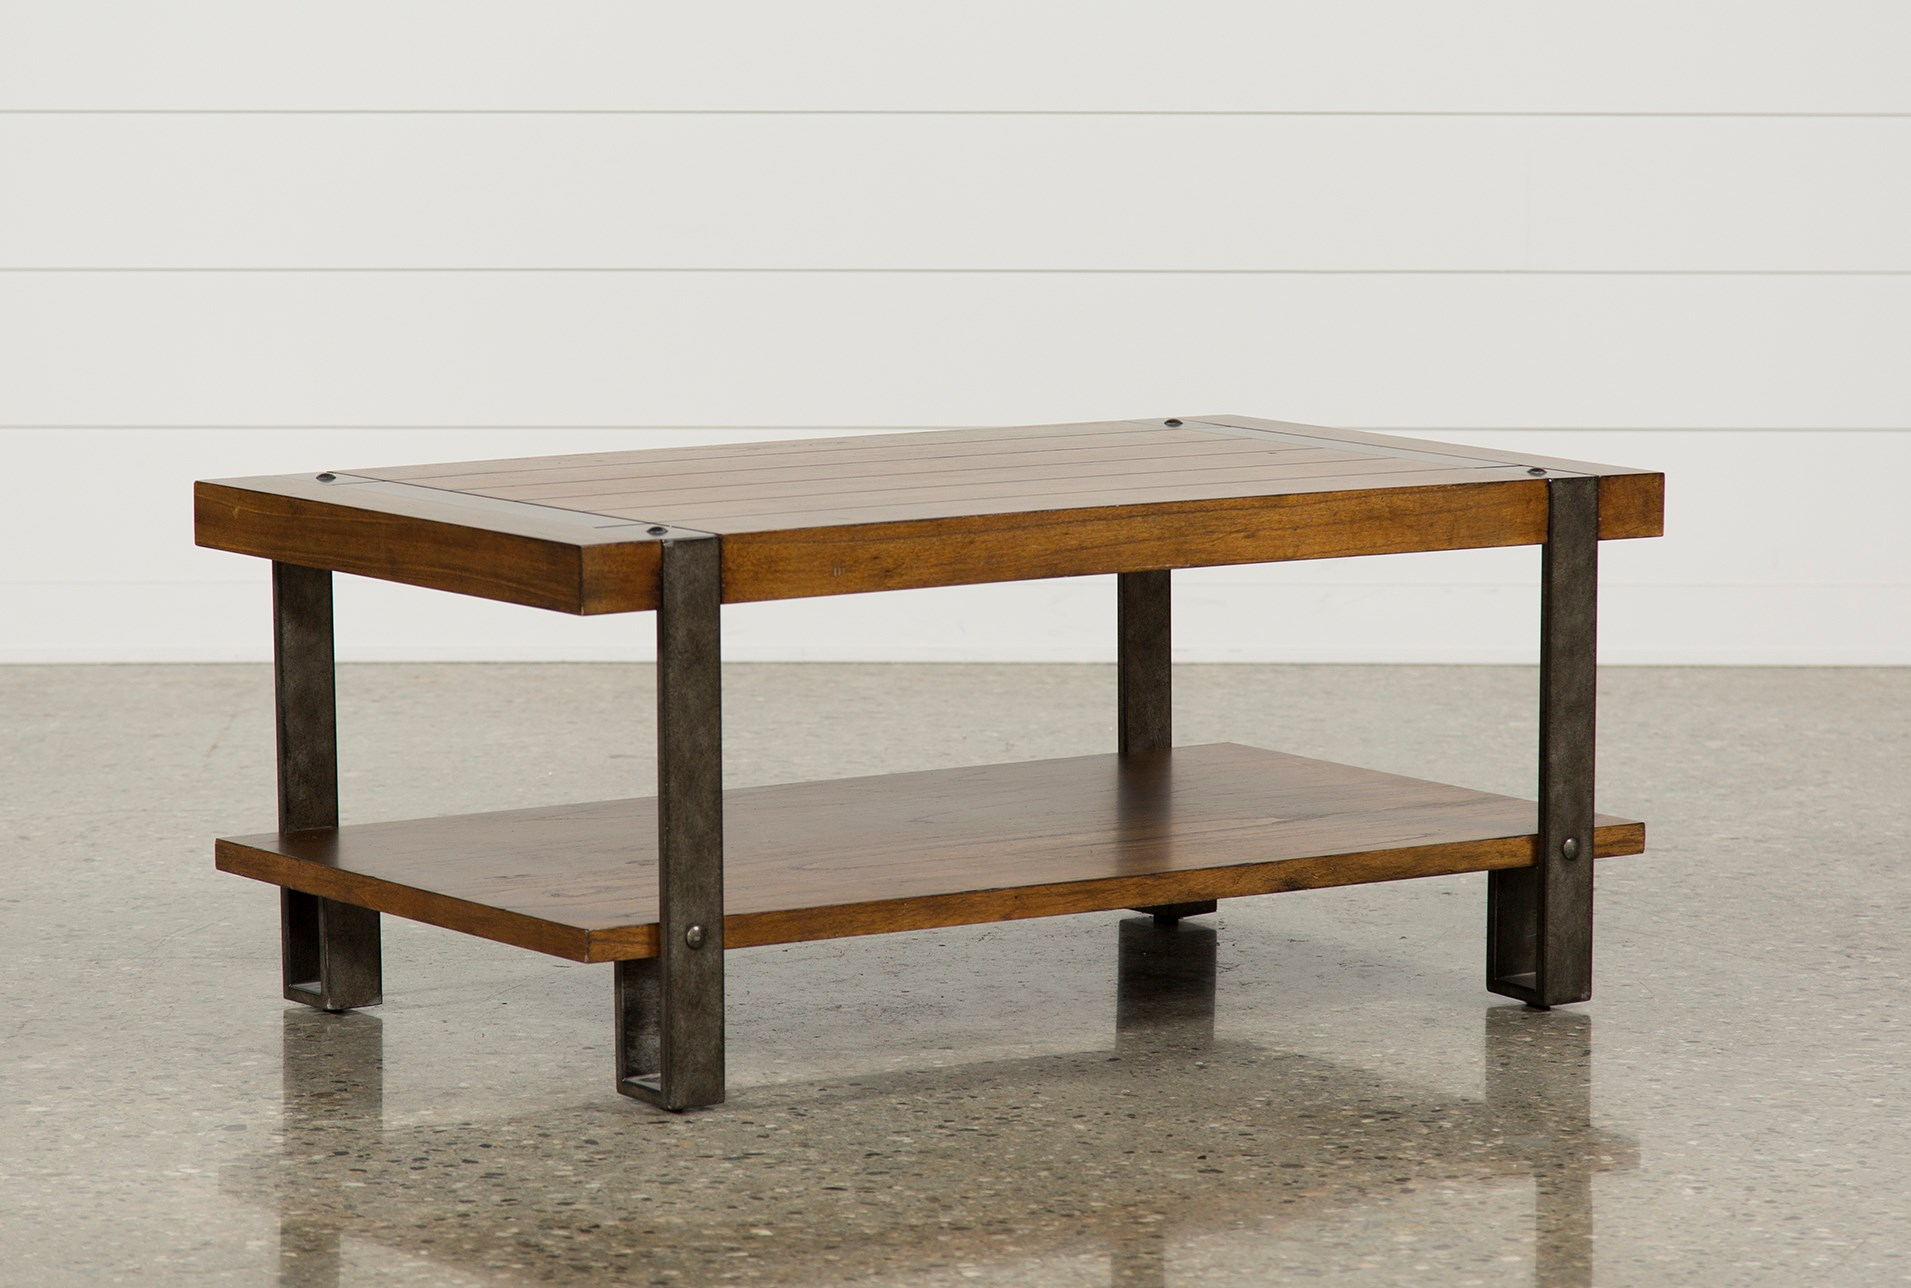 Marley Rectangle Coffee Table Qty 1 Has Been Successfully Added To Your Cart